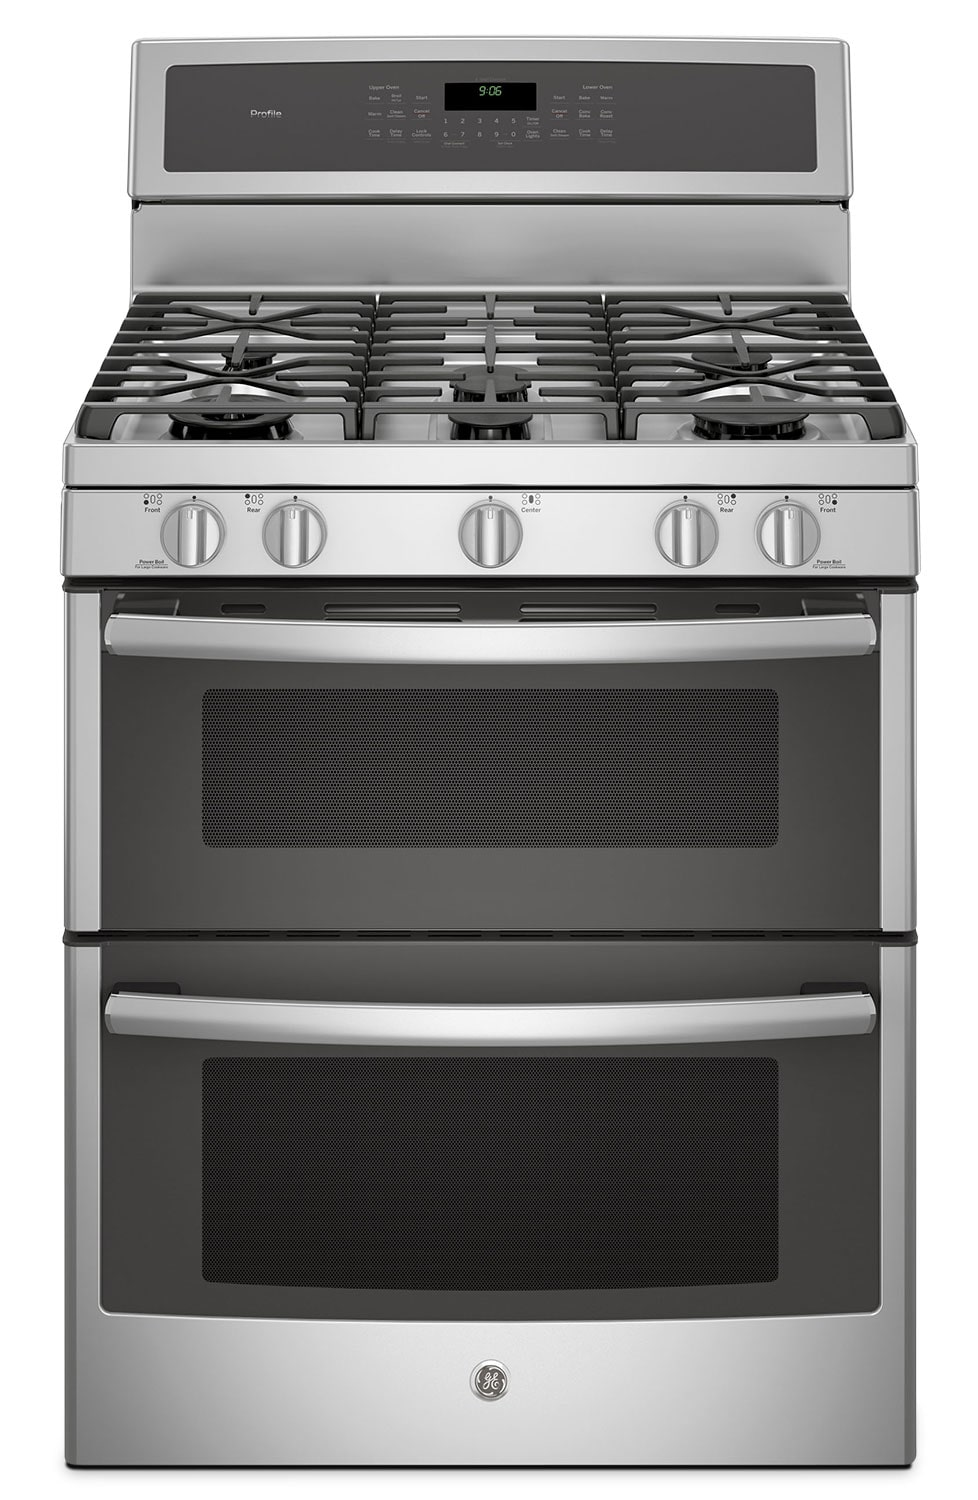 Cooking Products - GE 6.8 Cu. Ft. Freestanding Double Oven Gas Range – PCGB980ZEJSS